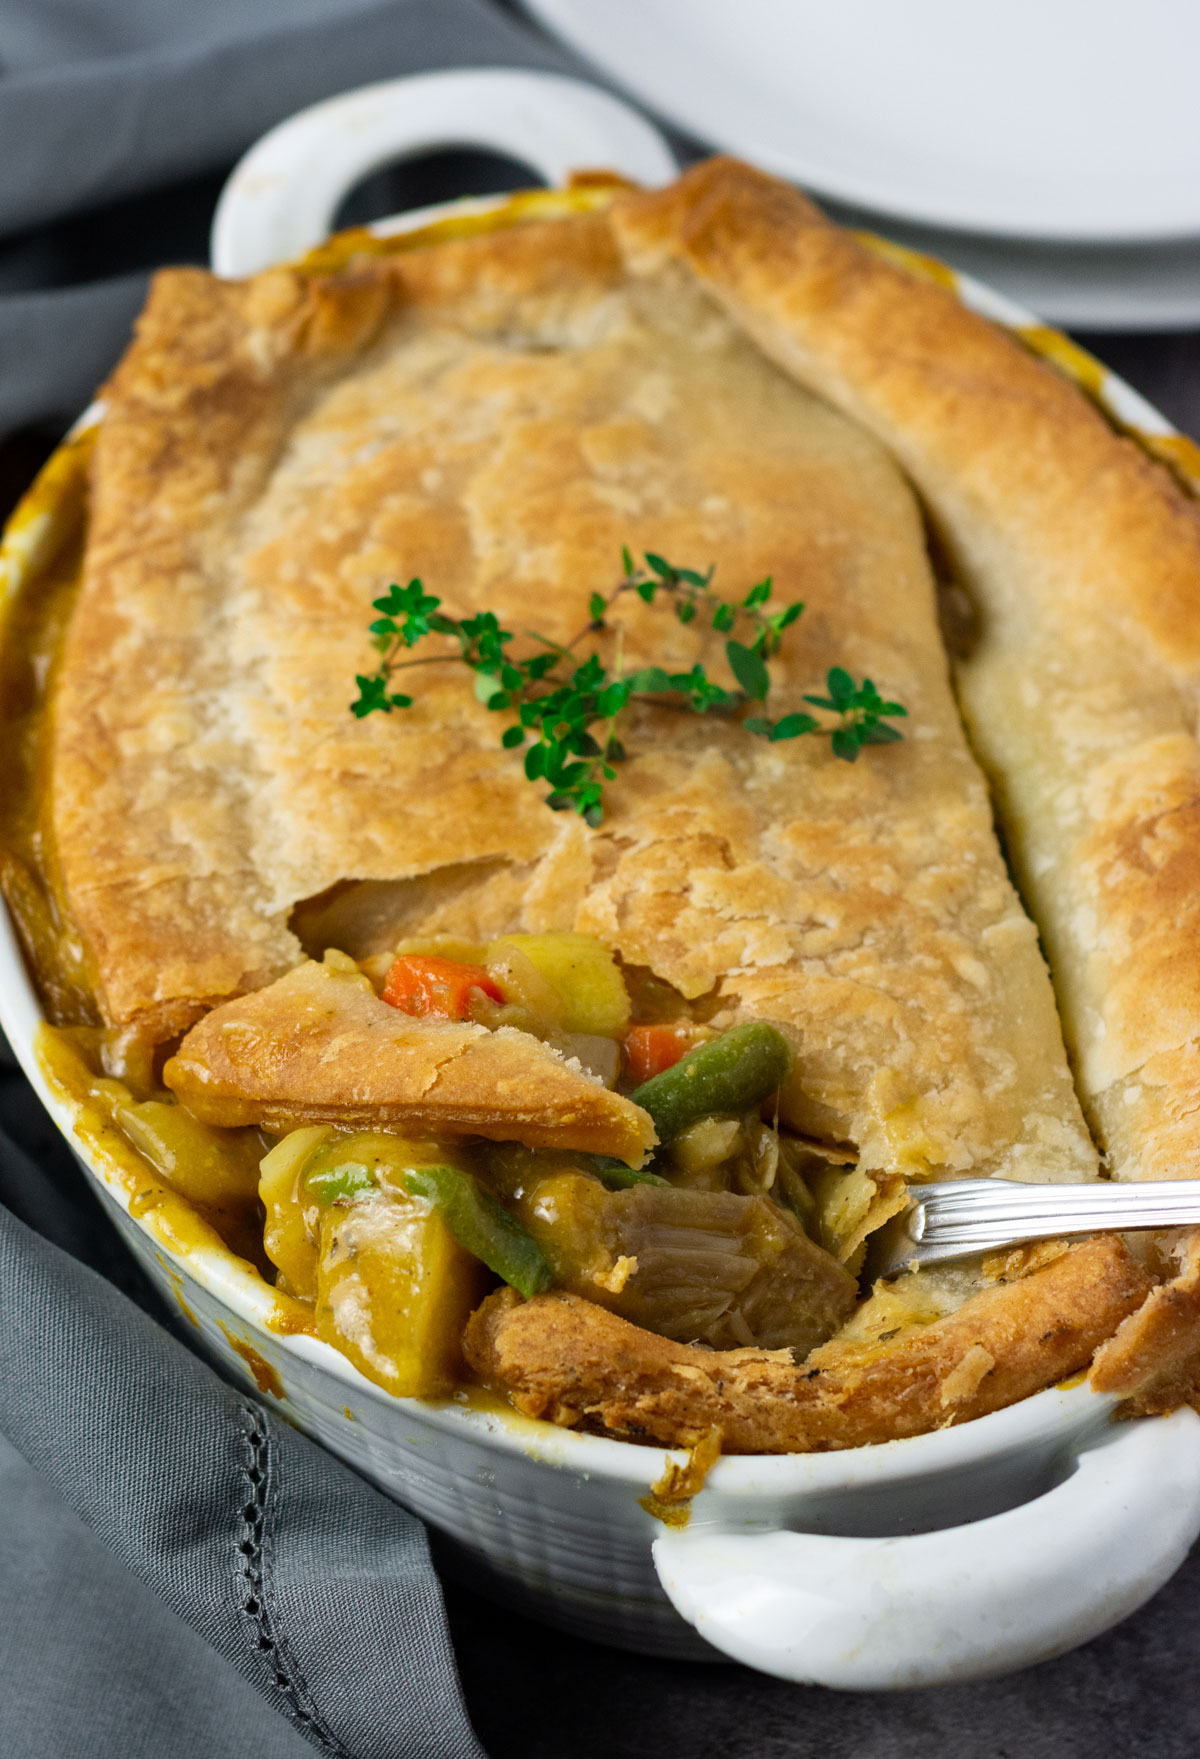 Overlay, gluten free vegan pot pie recipe with jackfruit, carrots, potato, celery in a creamy sauce